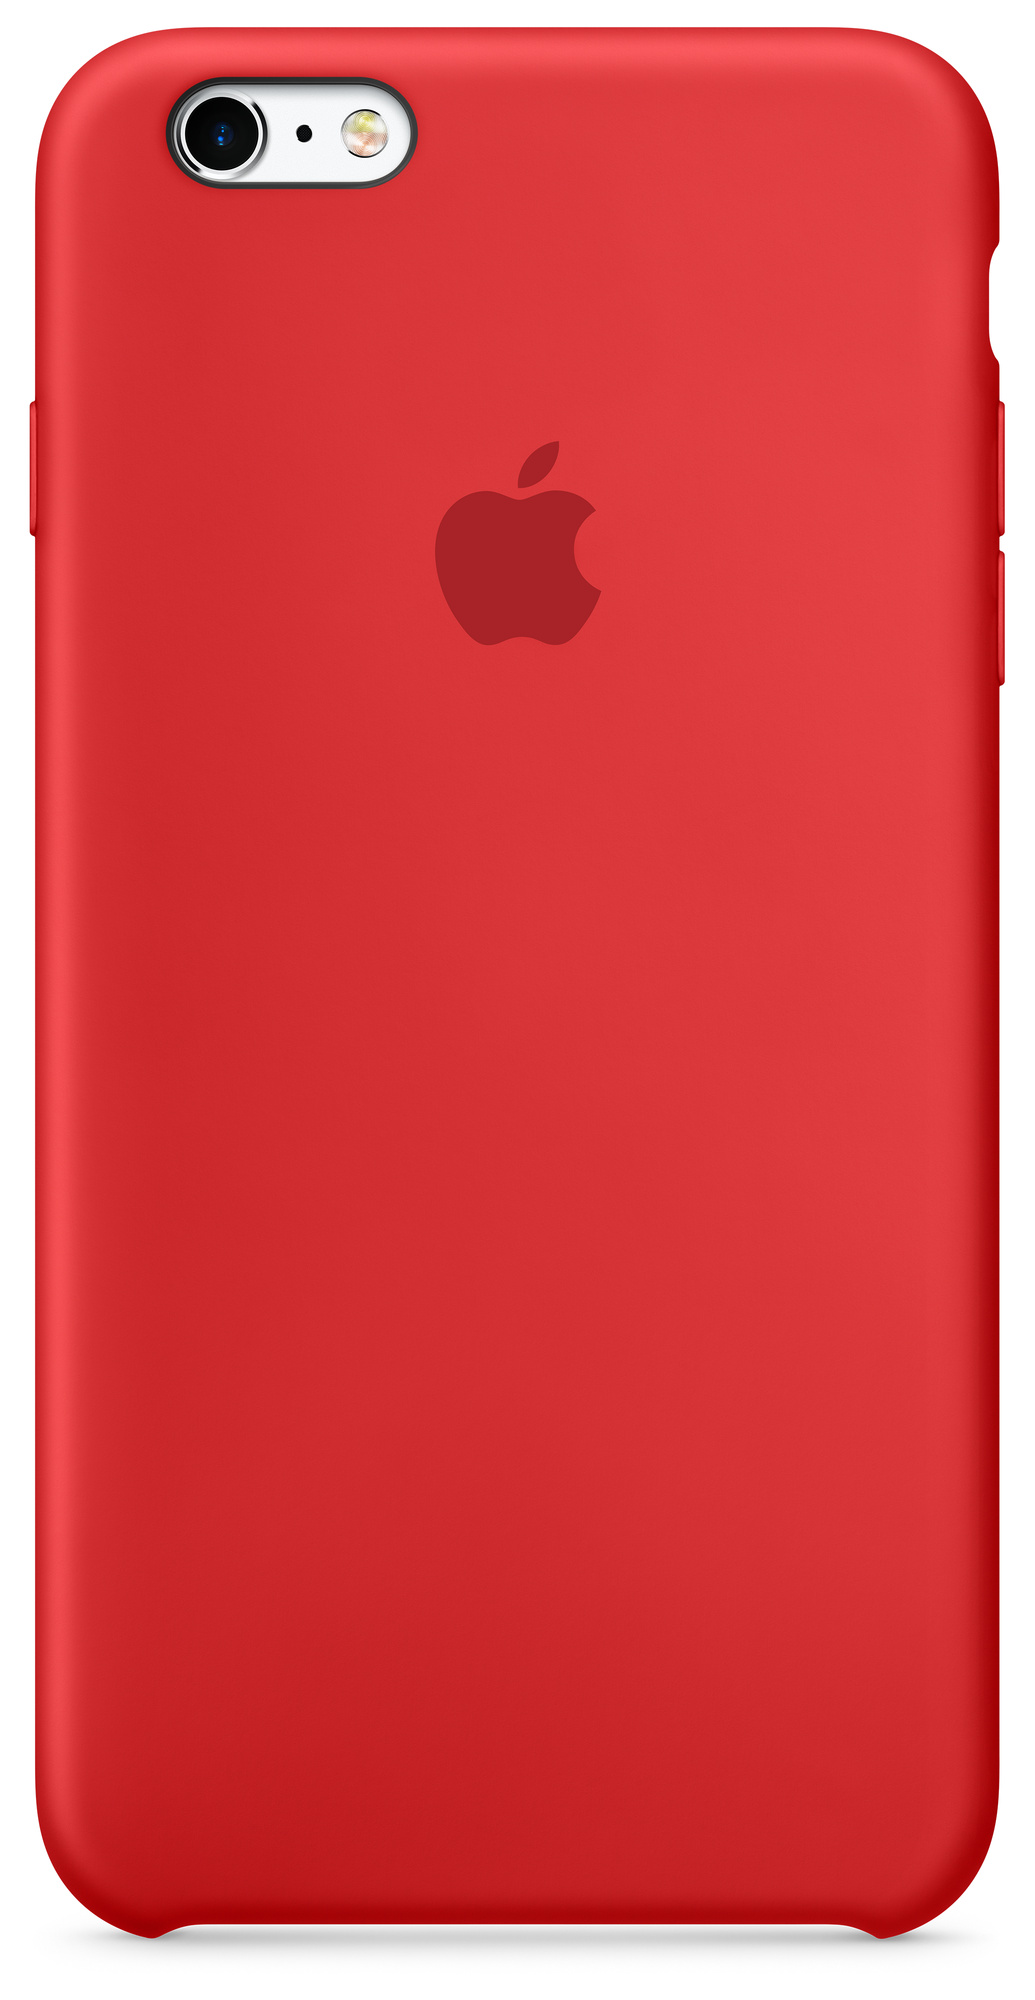 separation shoes d52ae b0e66 iPhone 6 Plus / 6s Plus Silicone Case - (PRODUCT)RED